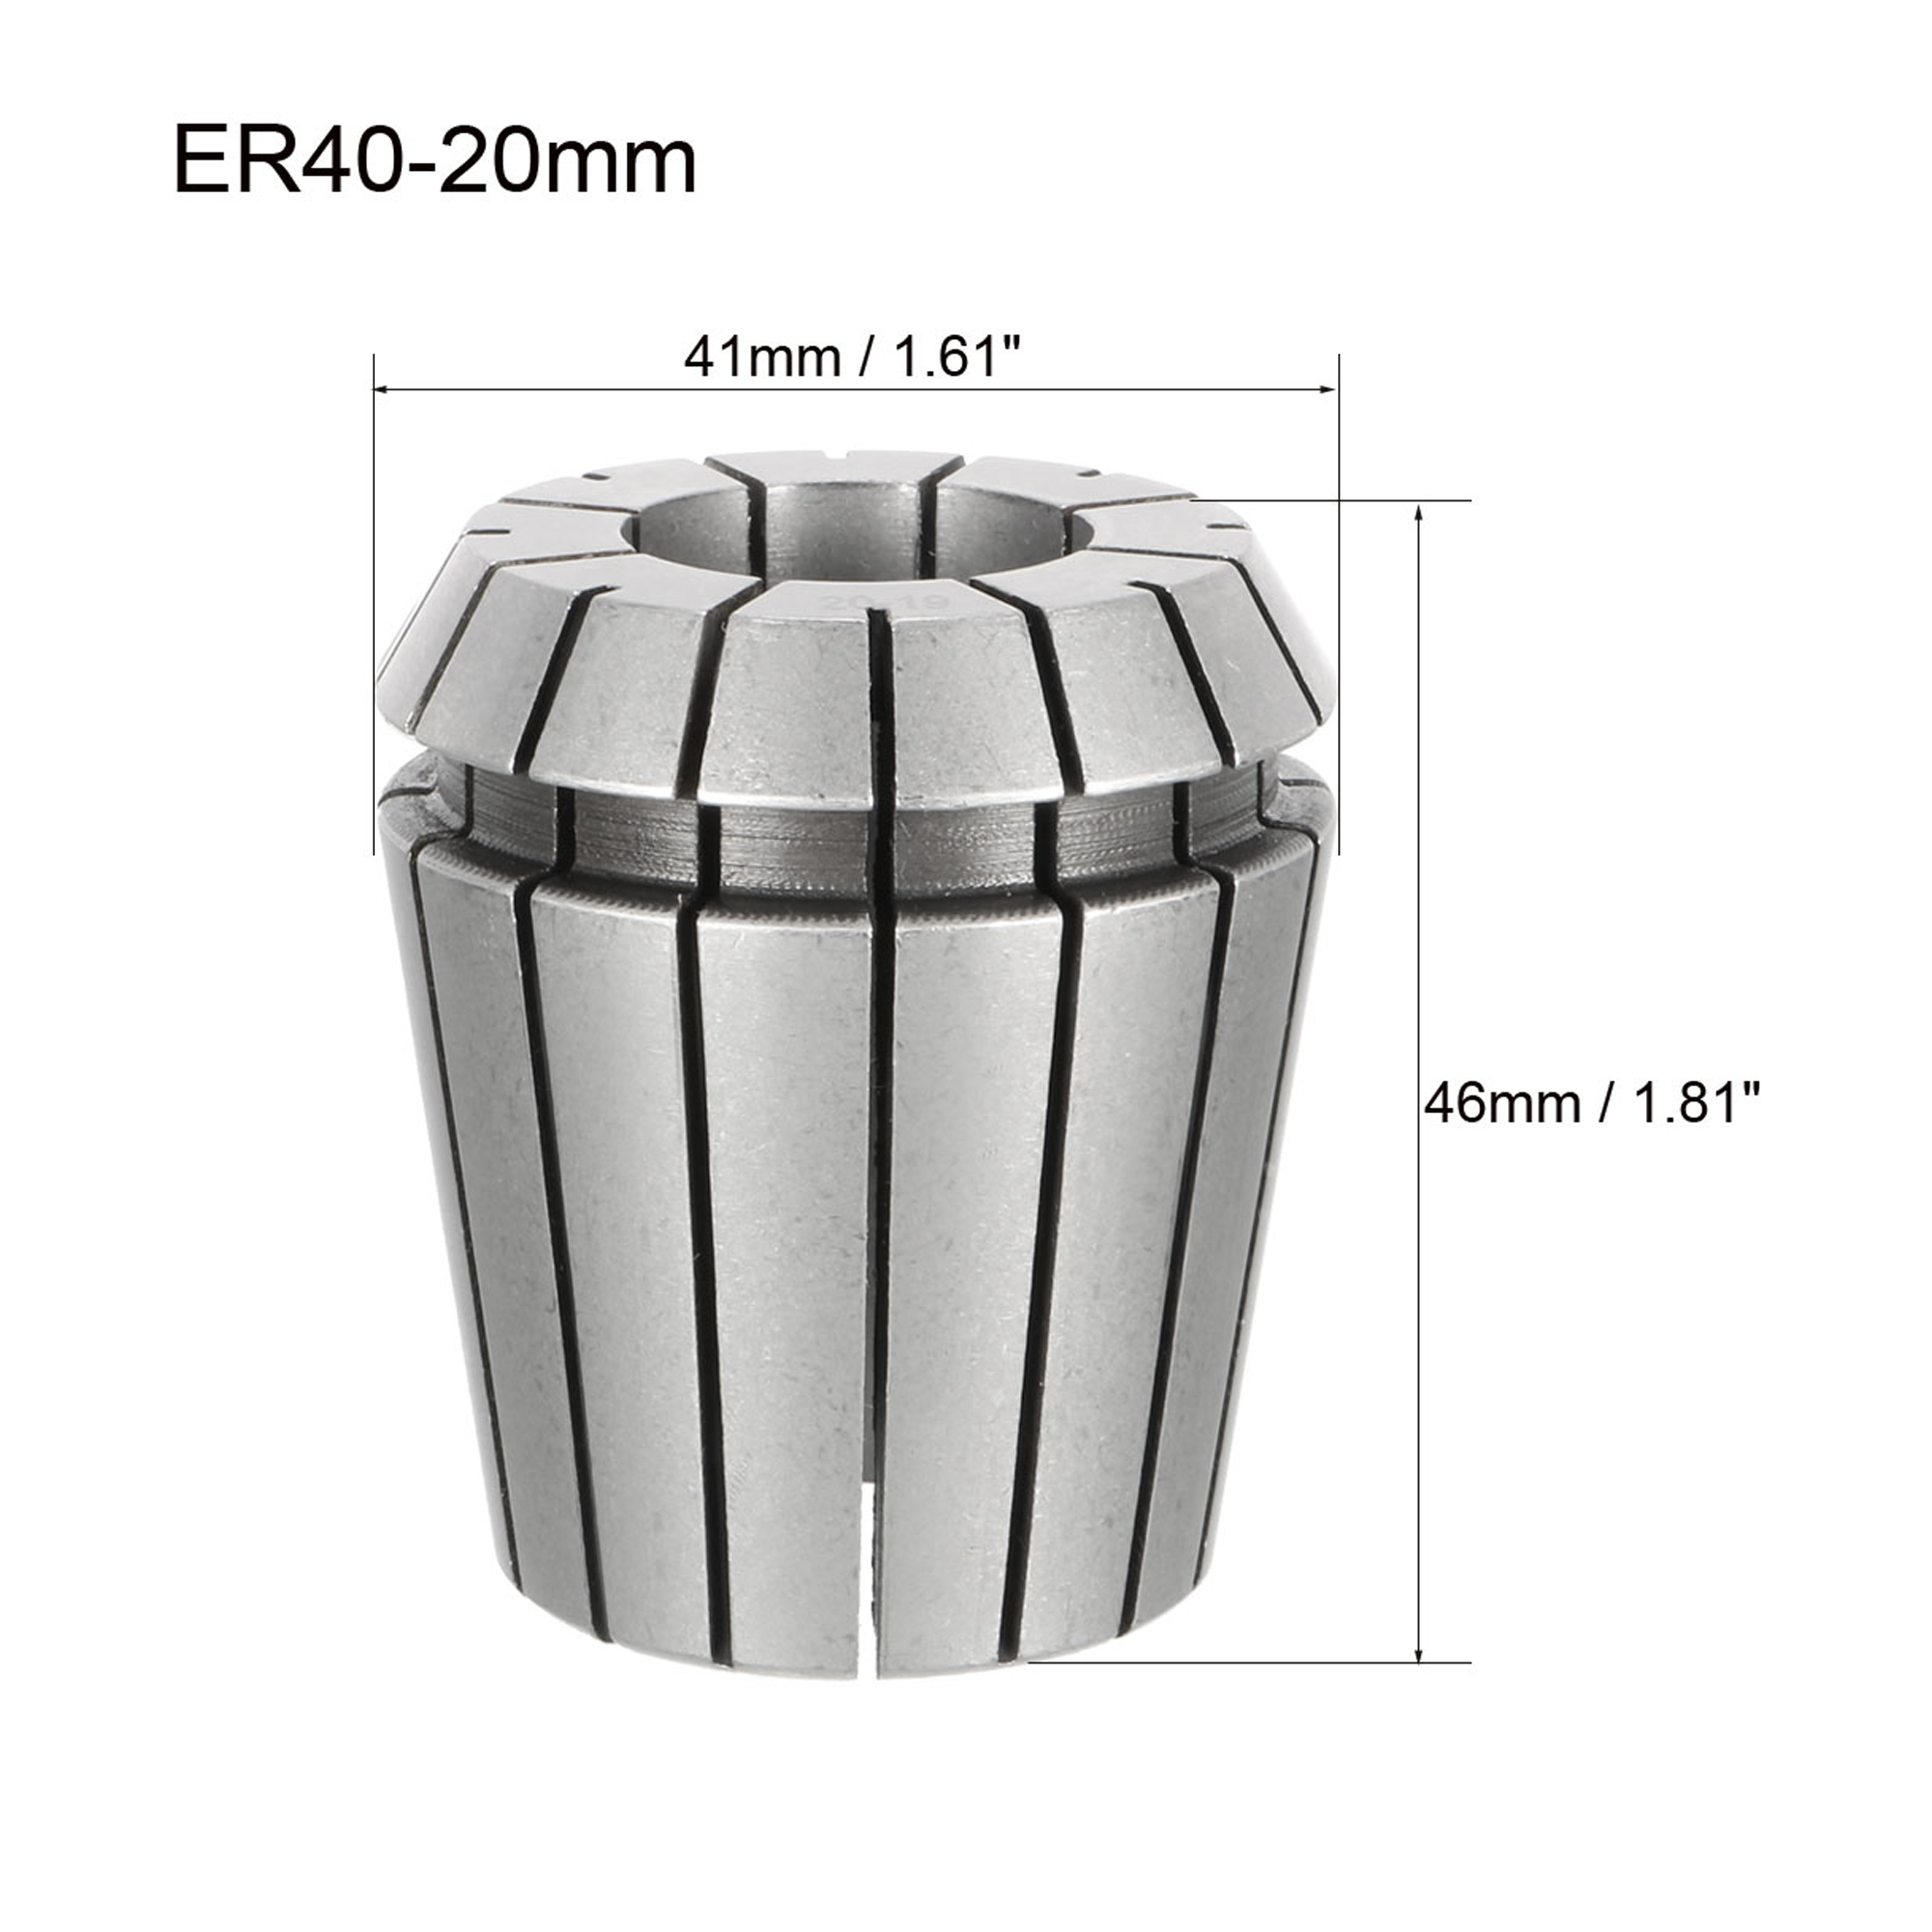 ER40 20mm Spring Collet Chuck for CNC Engraving Machine Lathe Milling Tool - image 2 of 3